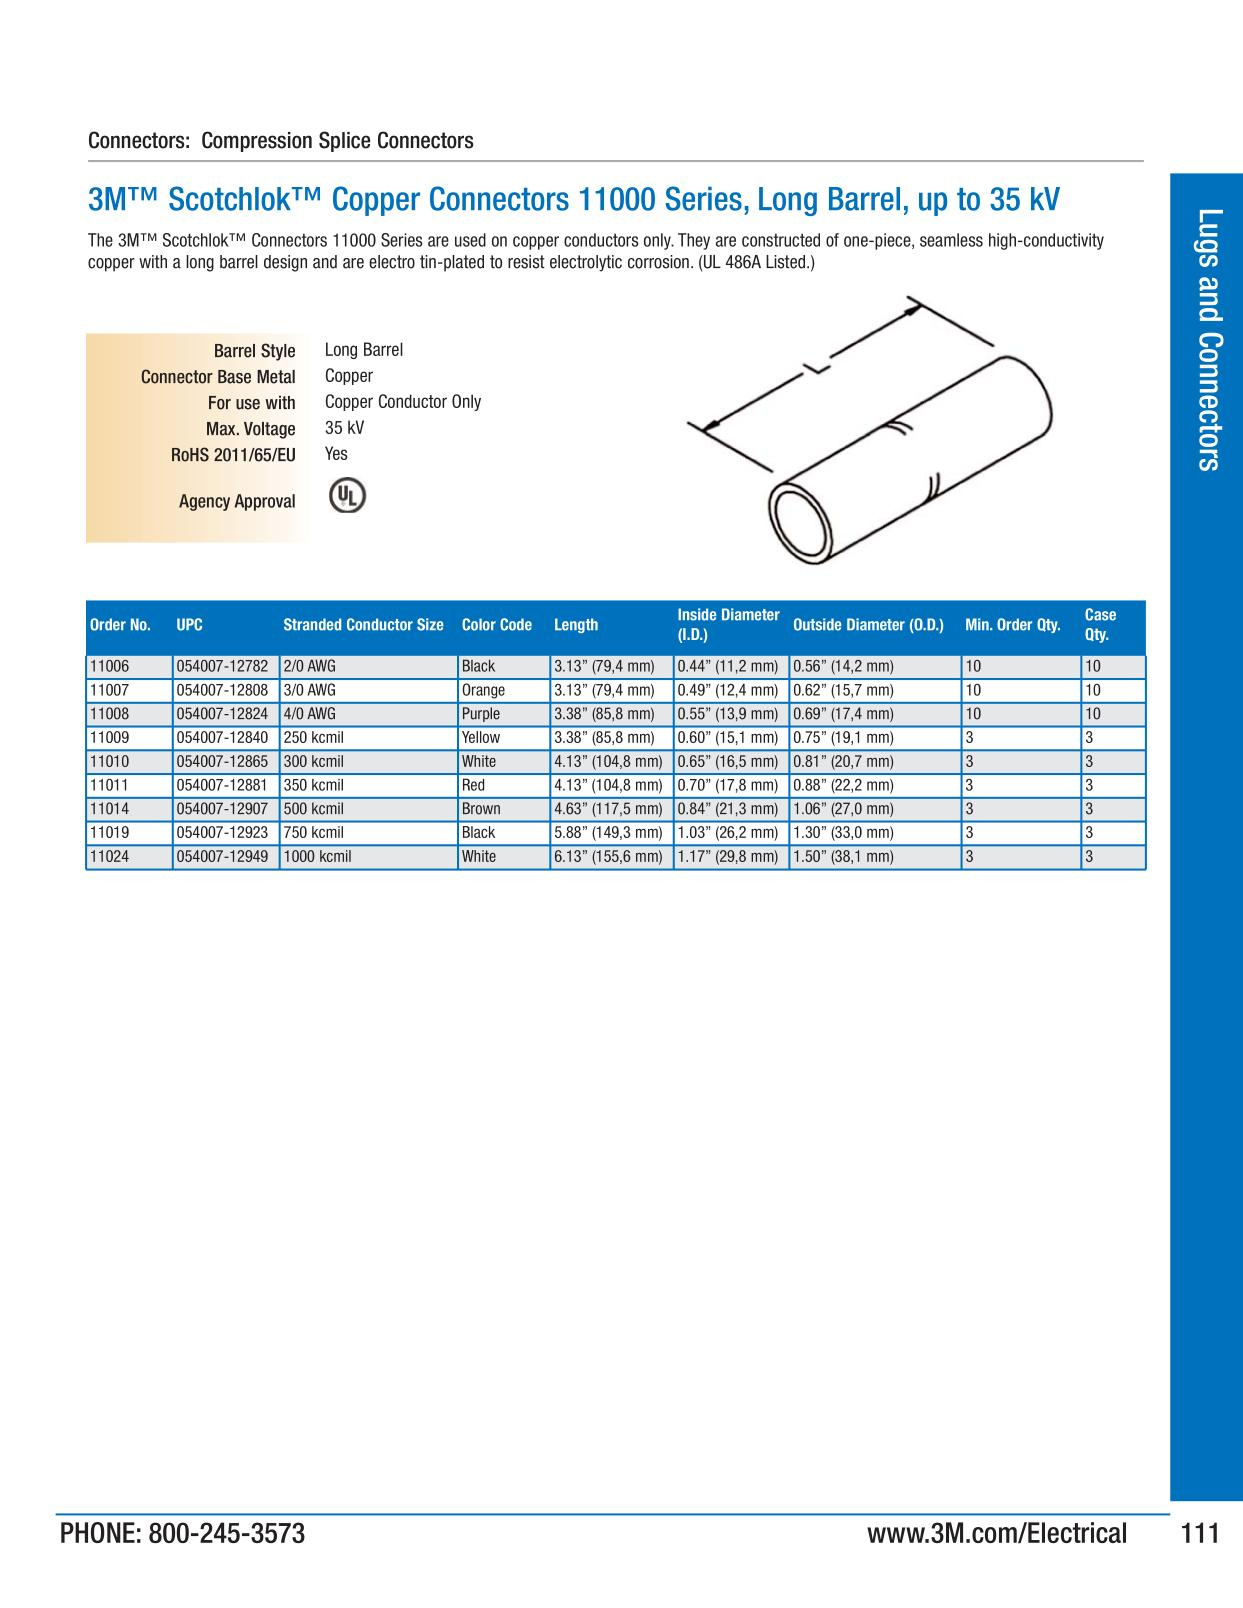 3M Electrical Products Page 110 - Lugs and Connectors